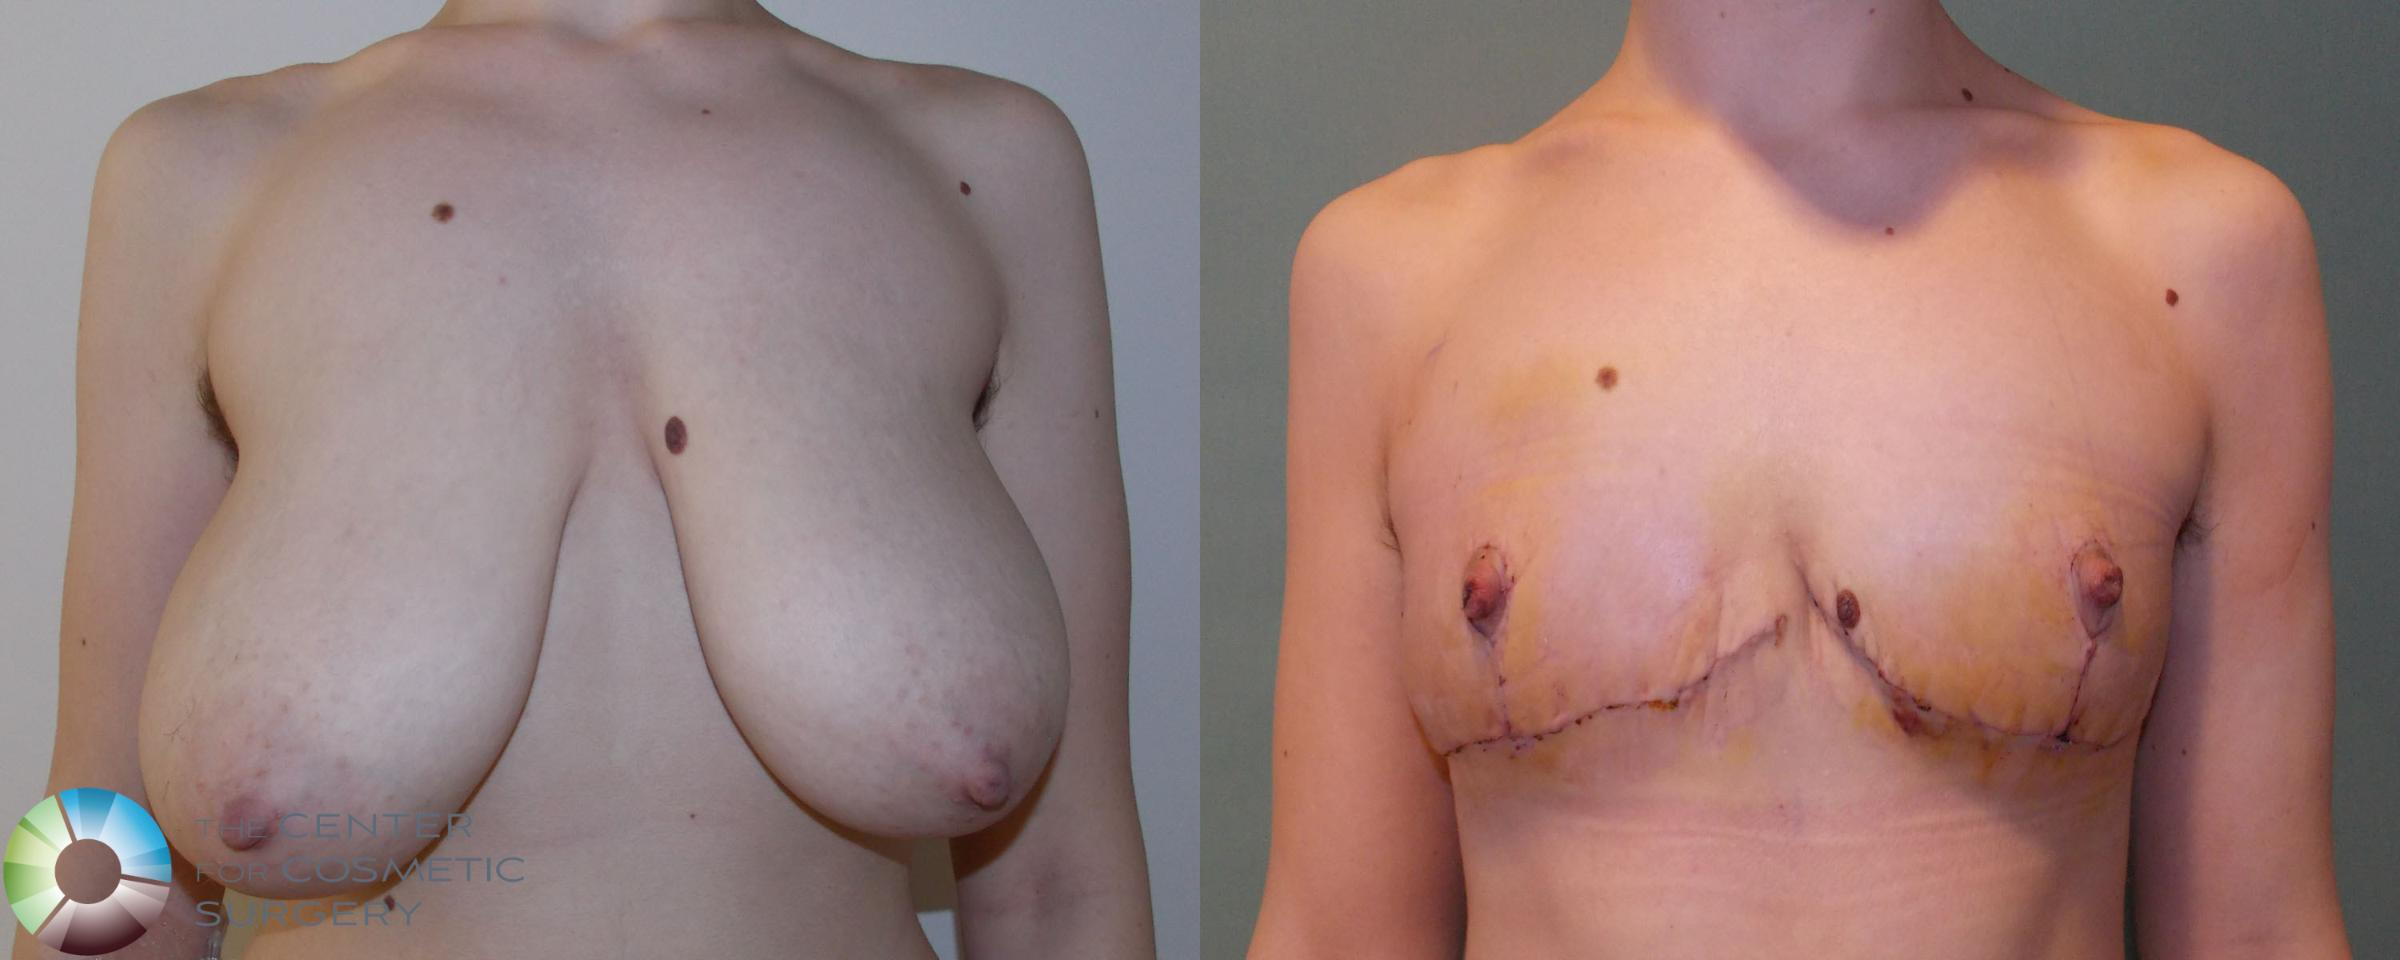 FTM Top Surgery/Chest Masculinization Case 693 Before & After View #1 | Golden, CO | The Center for Cosmetic Surgery